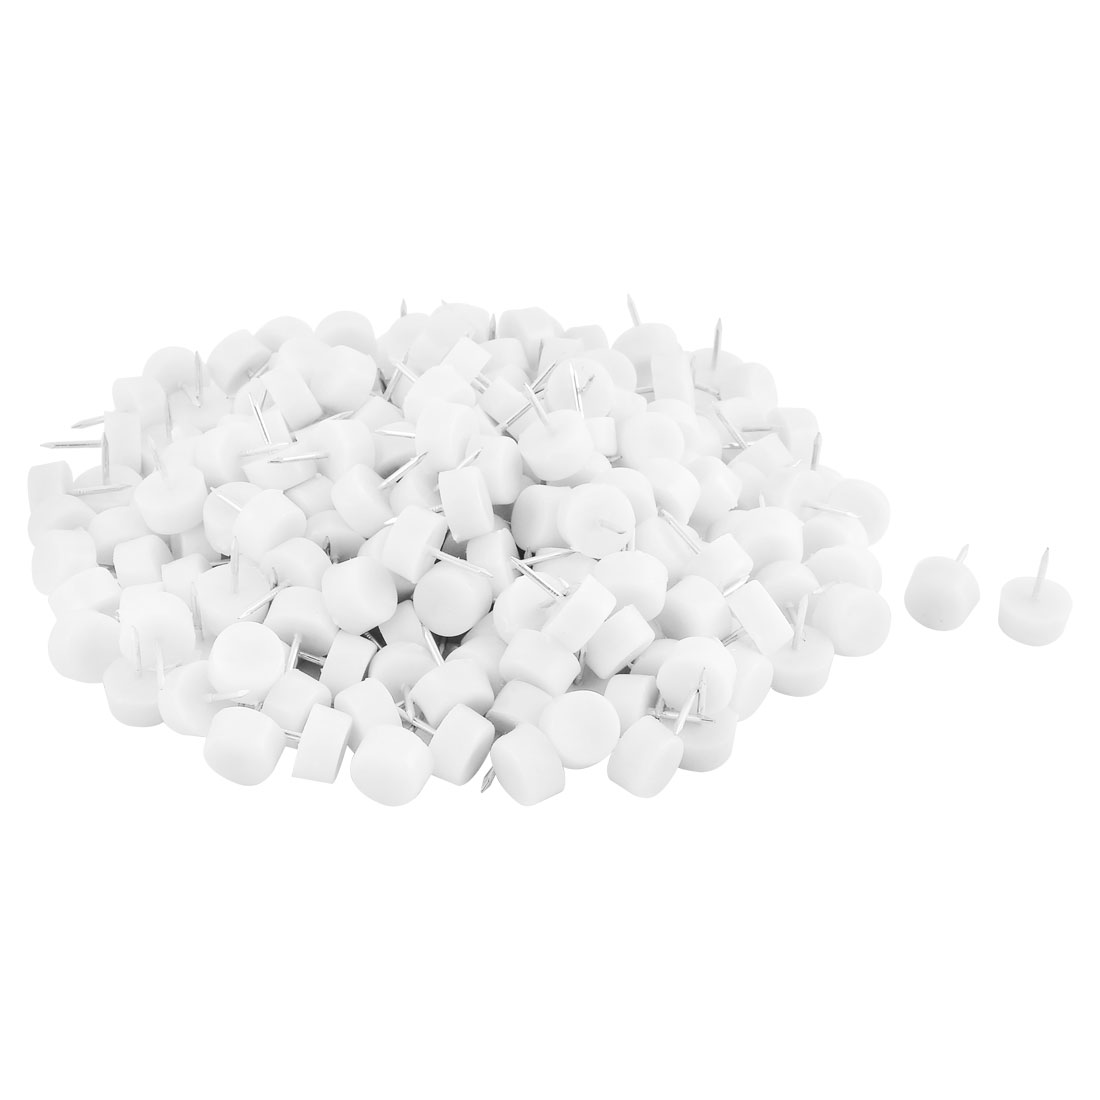 Home Plastic Floor Protector Chair Table Furniture Legs Glide Nail White 10 x 18mm 200pcs